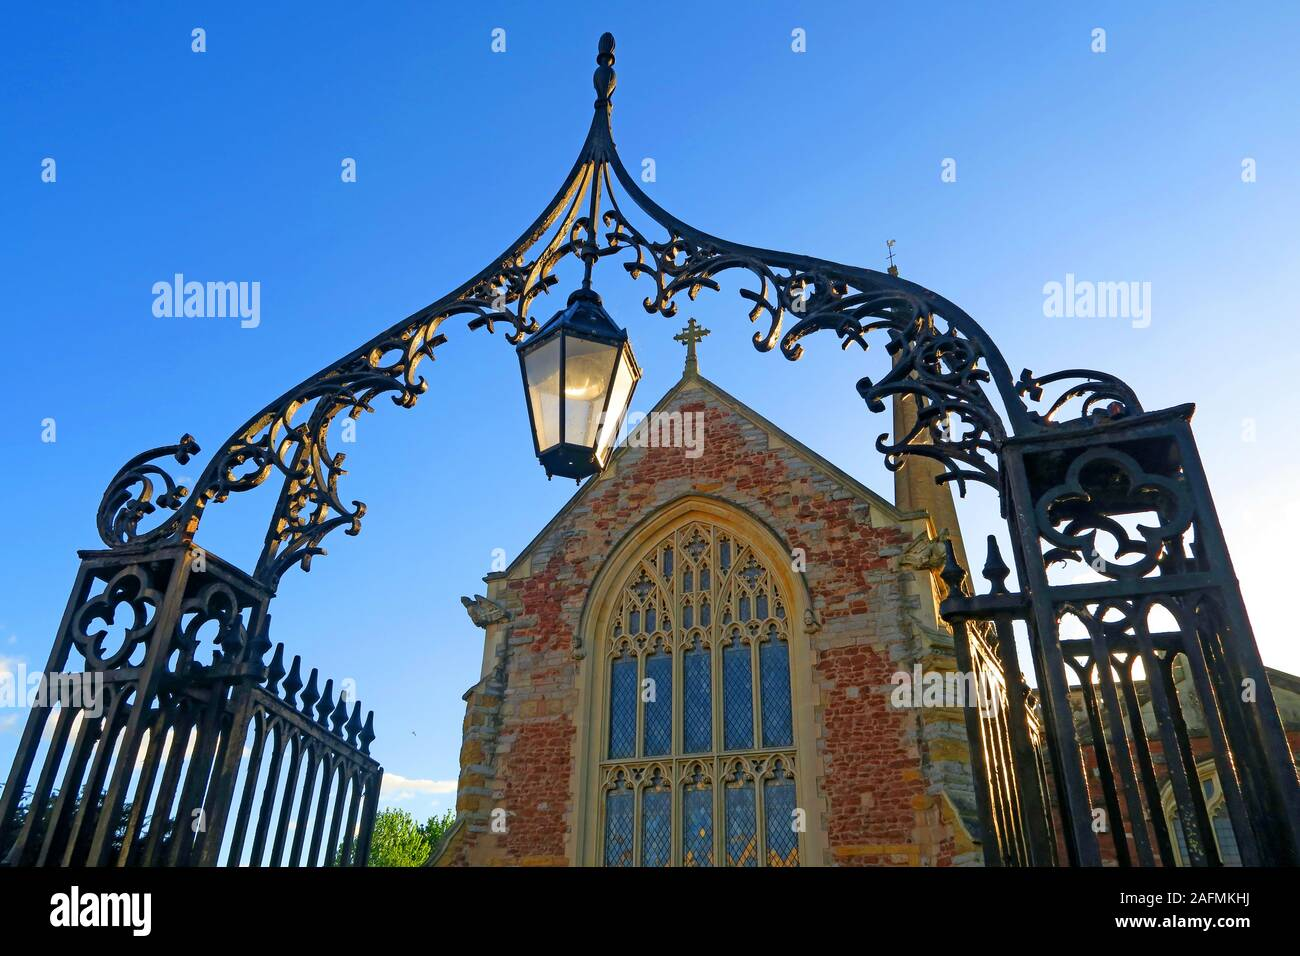 HotpixUK,@HotpixUK,GoTonySmith,SDC,Sedgemoor,Sedgemoor District Council,South West England,England,UK,South West,town,lamp,lantern,ironwork,Gate,arch,iron arch,st Mary,church,Anglican,religion,religious,town centre,Grade I listed building,listed buildings,listed,building,architecture,deanery of Sedgemoor,the Virgin,William Briwere,TA6,Bridgwater,Somerset